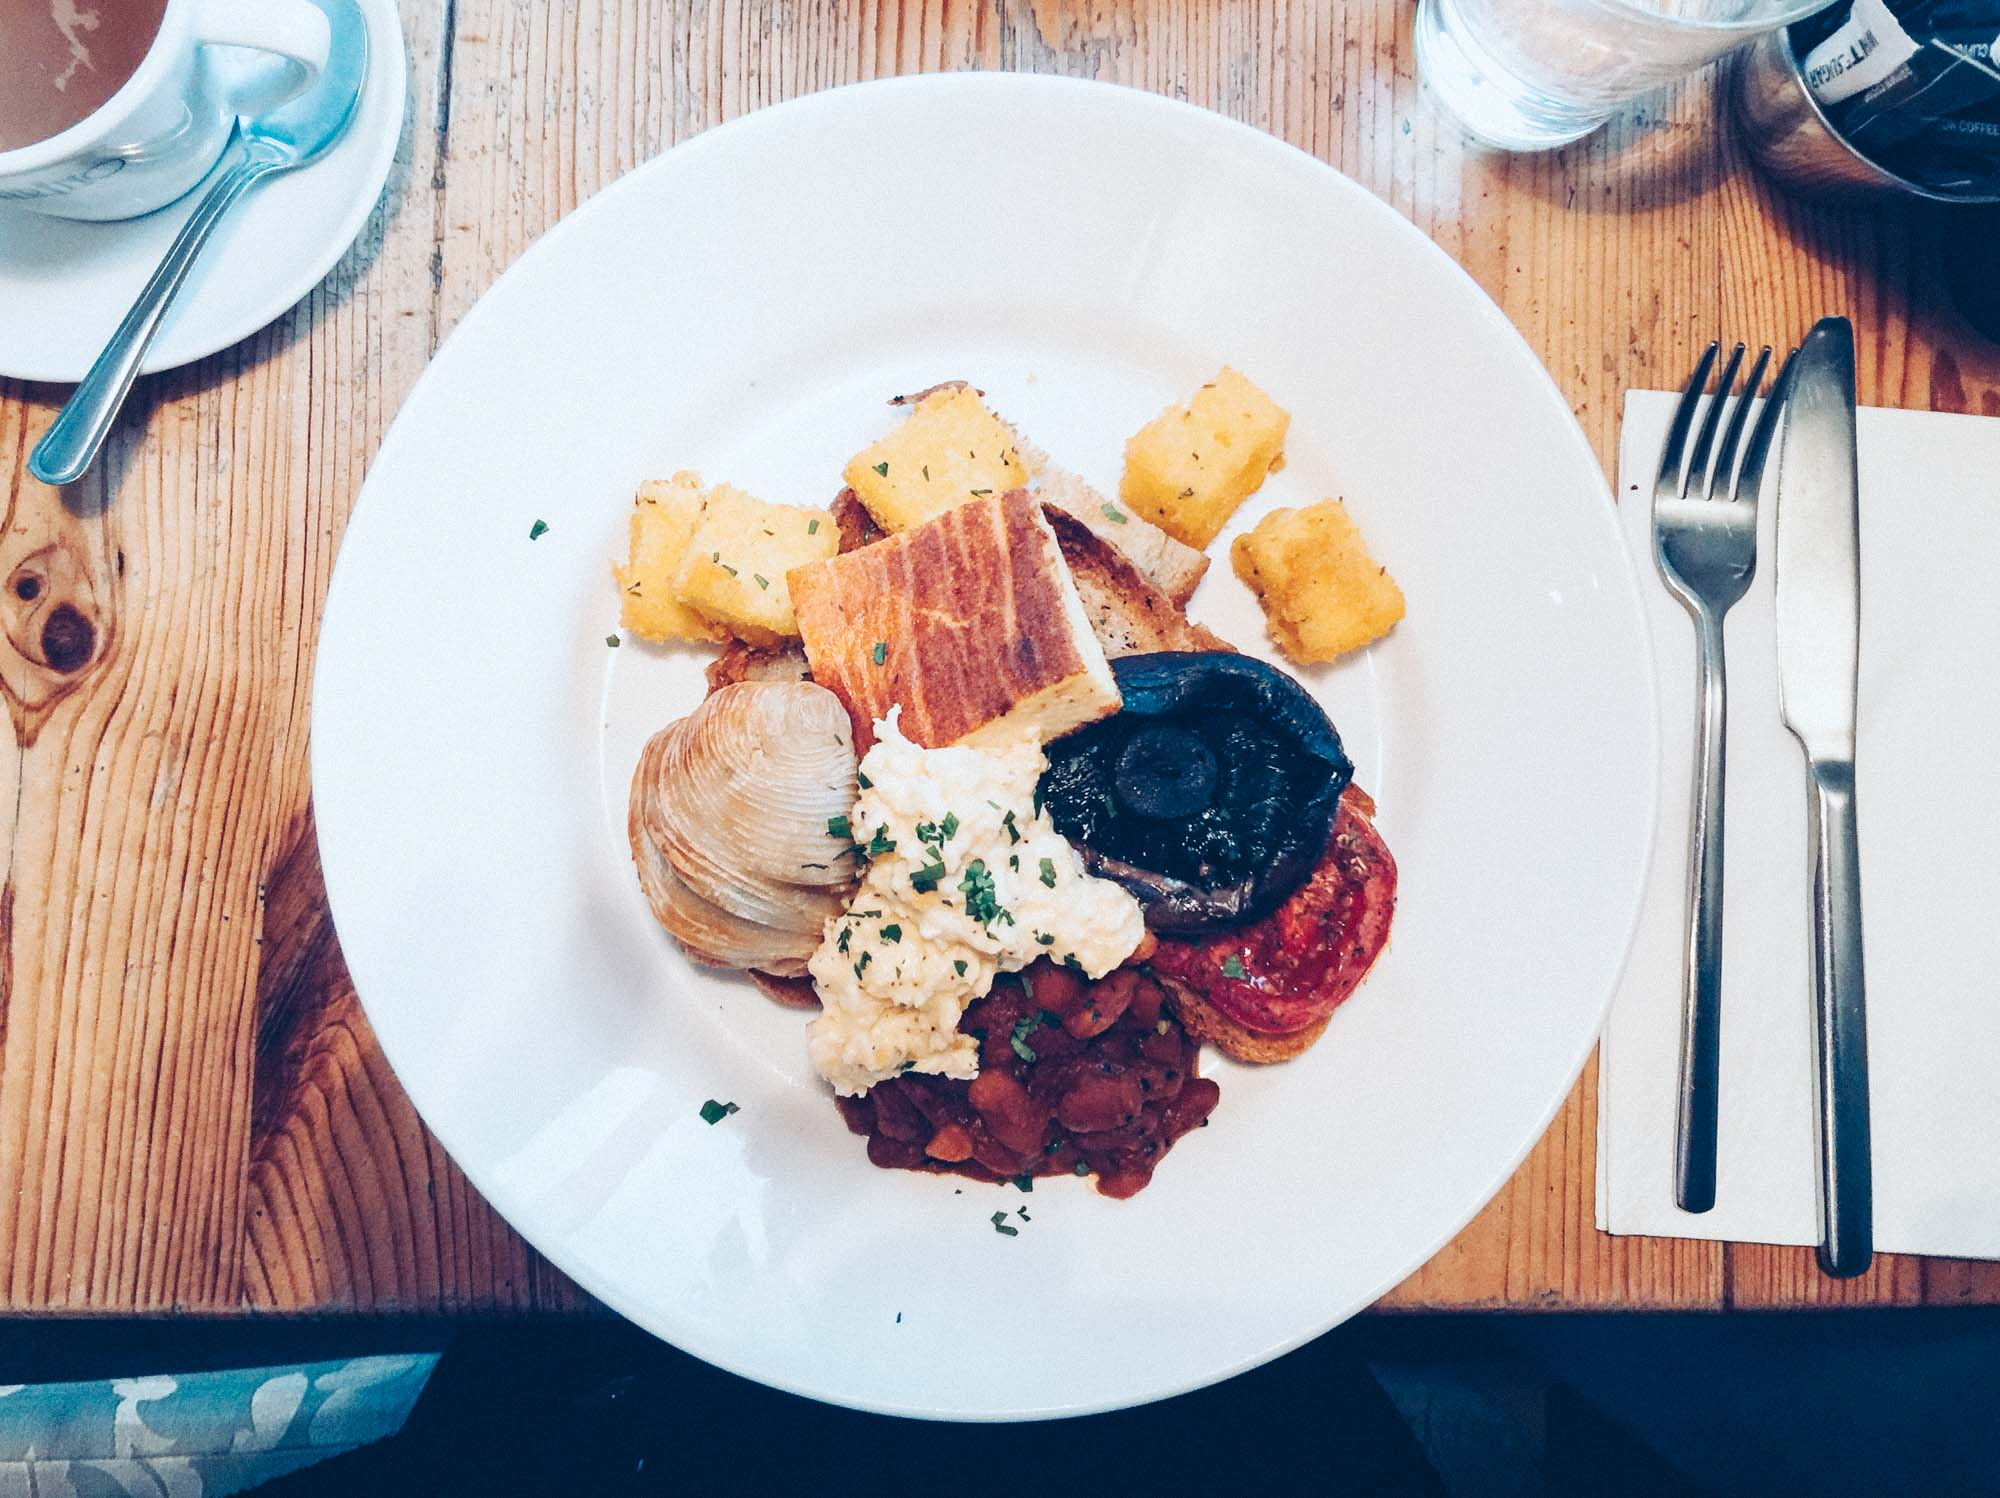 Best brunches in Bristol - ROSEMARINO